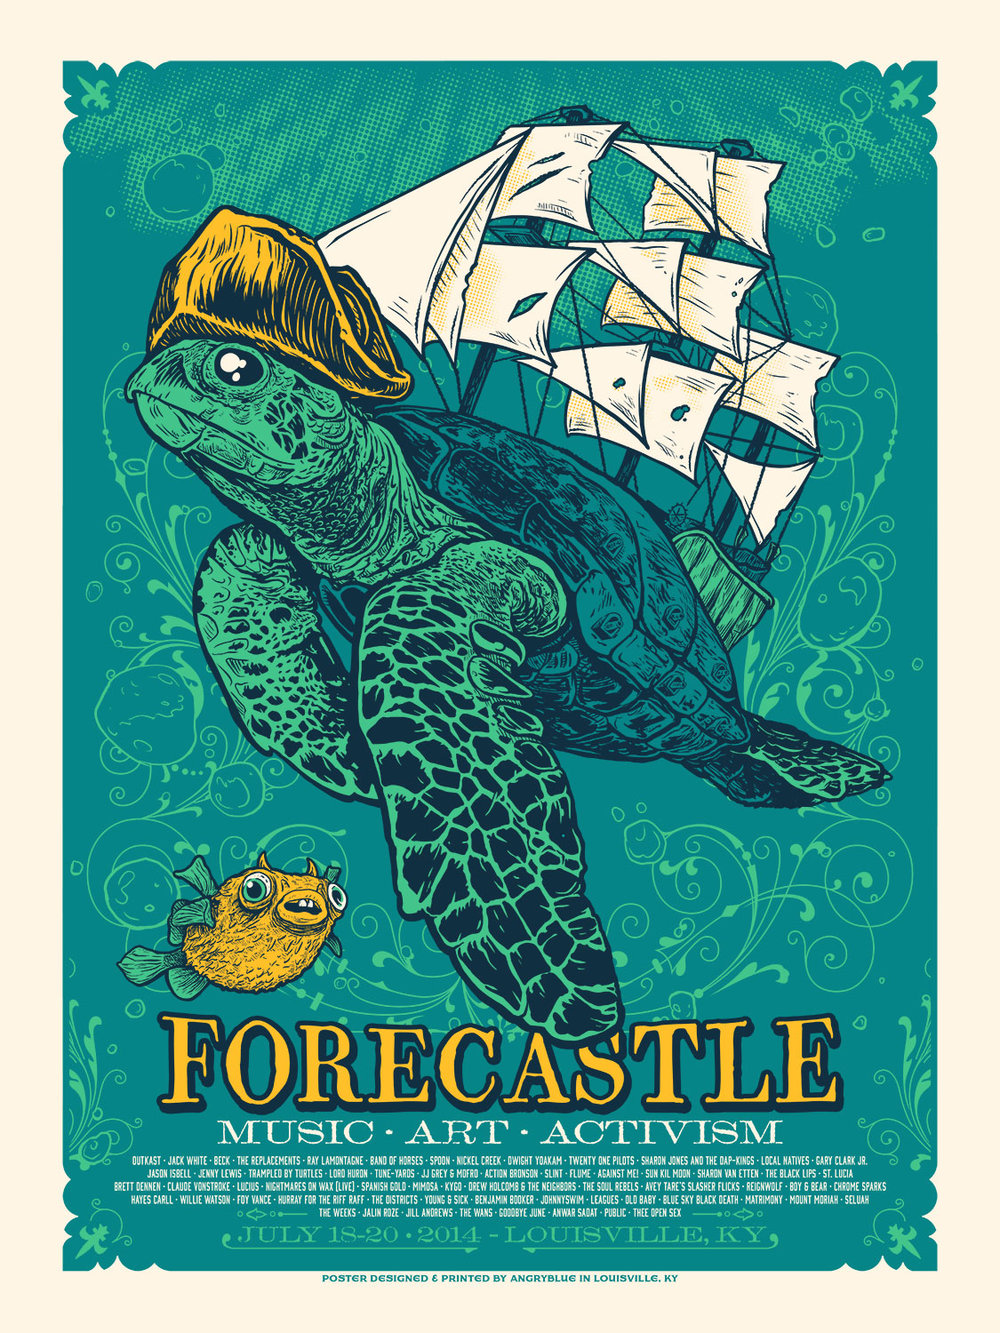 Forecastle is a music festival in Louisville, KY with an aesthetic focus of water, bourbon, surrealism and activism. I did this poster for 2014 and two others for 2015 and 2016.